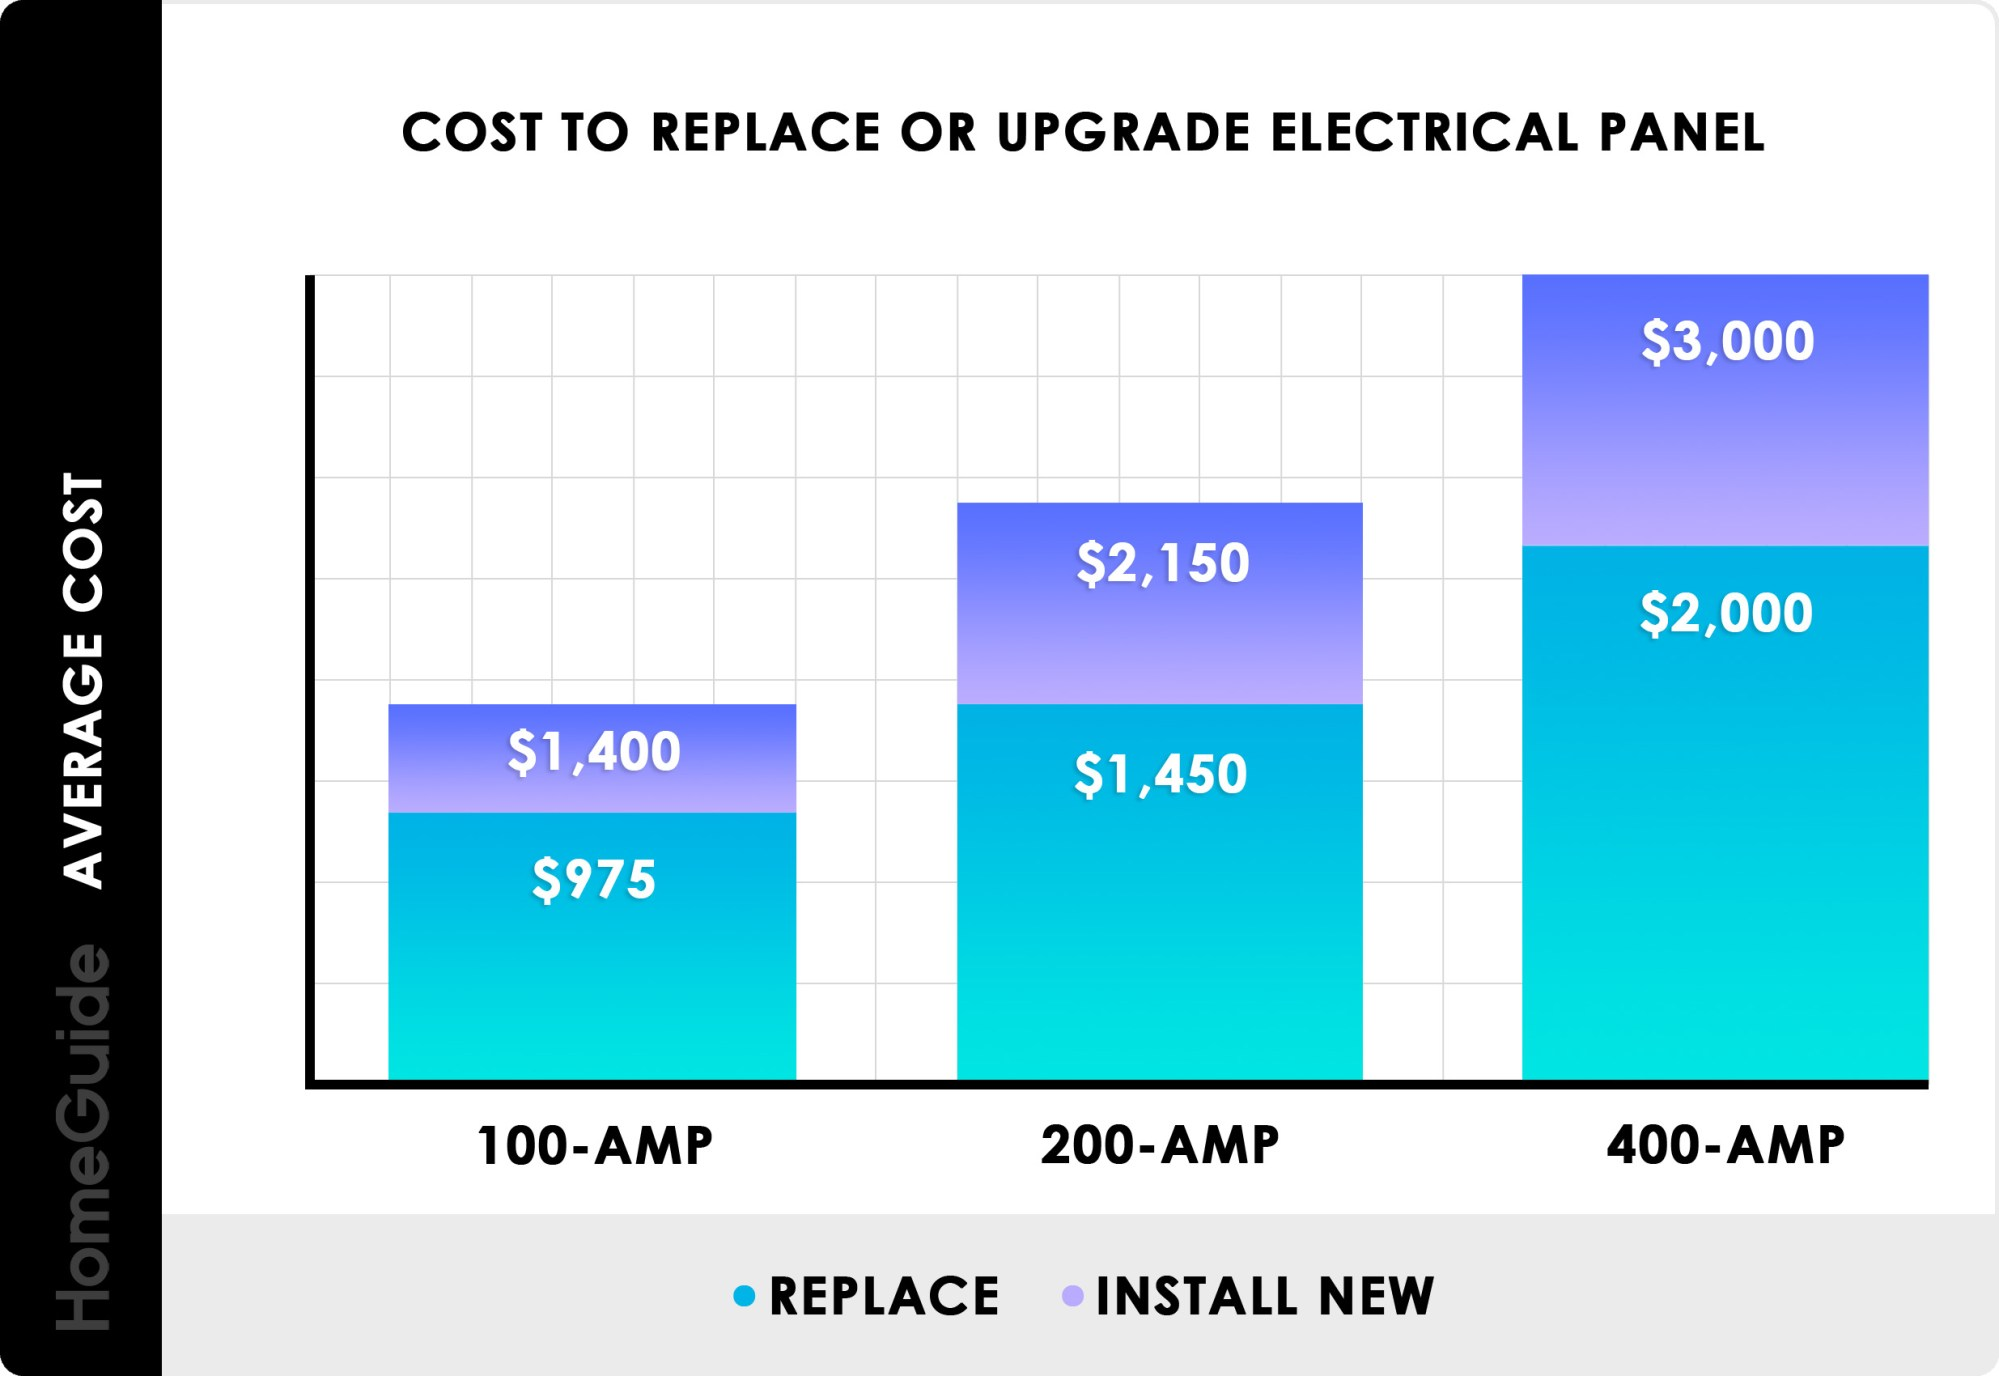 hight resolution of cost to replace or upgrade electrical panel chart